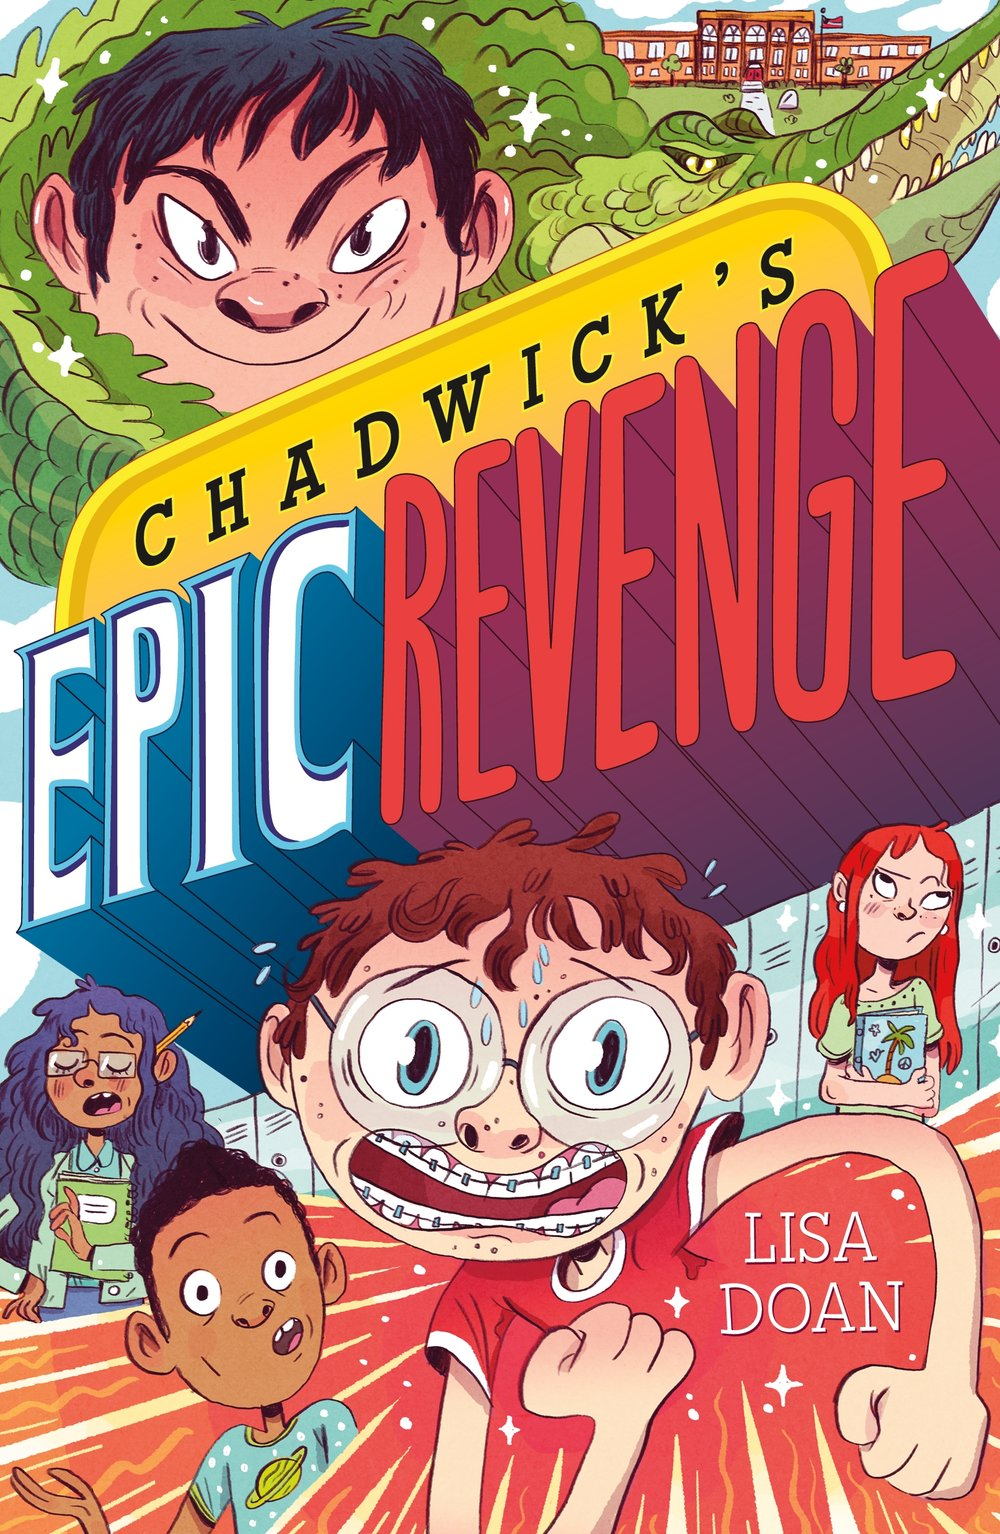 Chadwick's Epic Revenge, Lisa Doan For Roaring Brook Press. Illustration by Natalie Andrewson, lettering by Aimee Fleck.